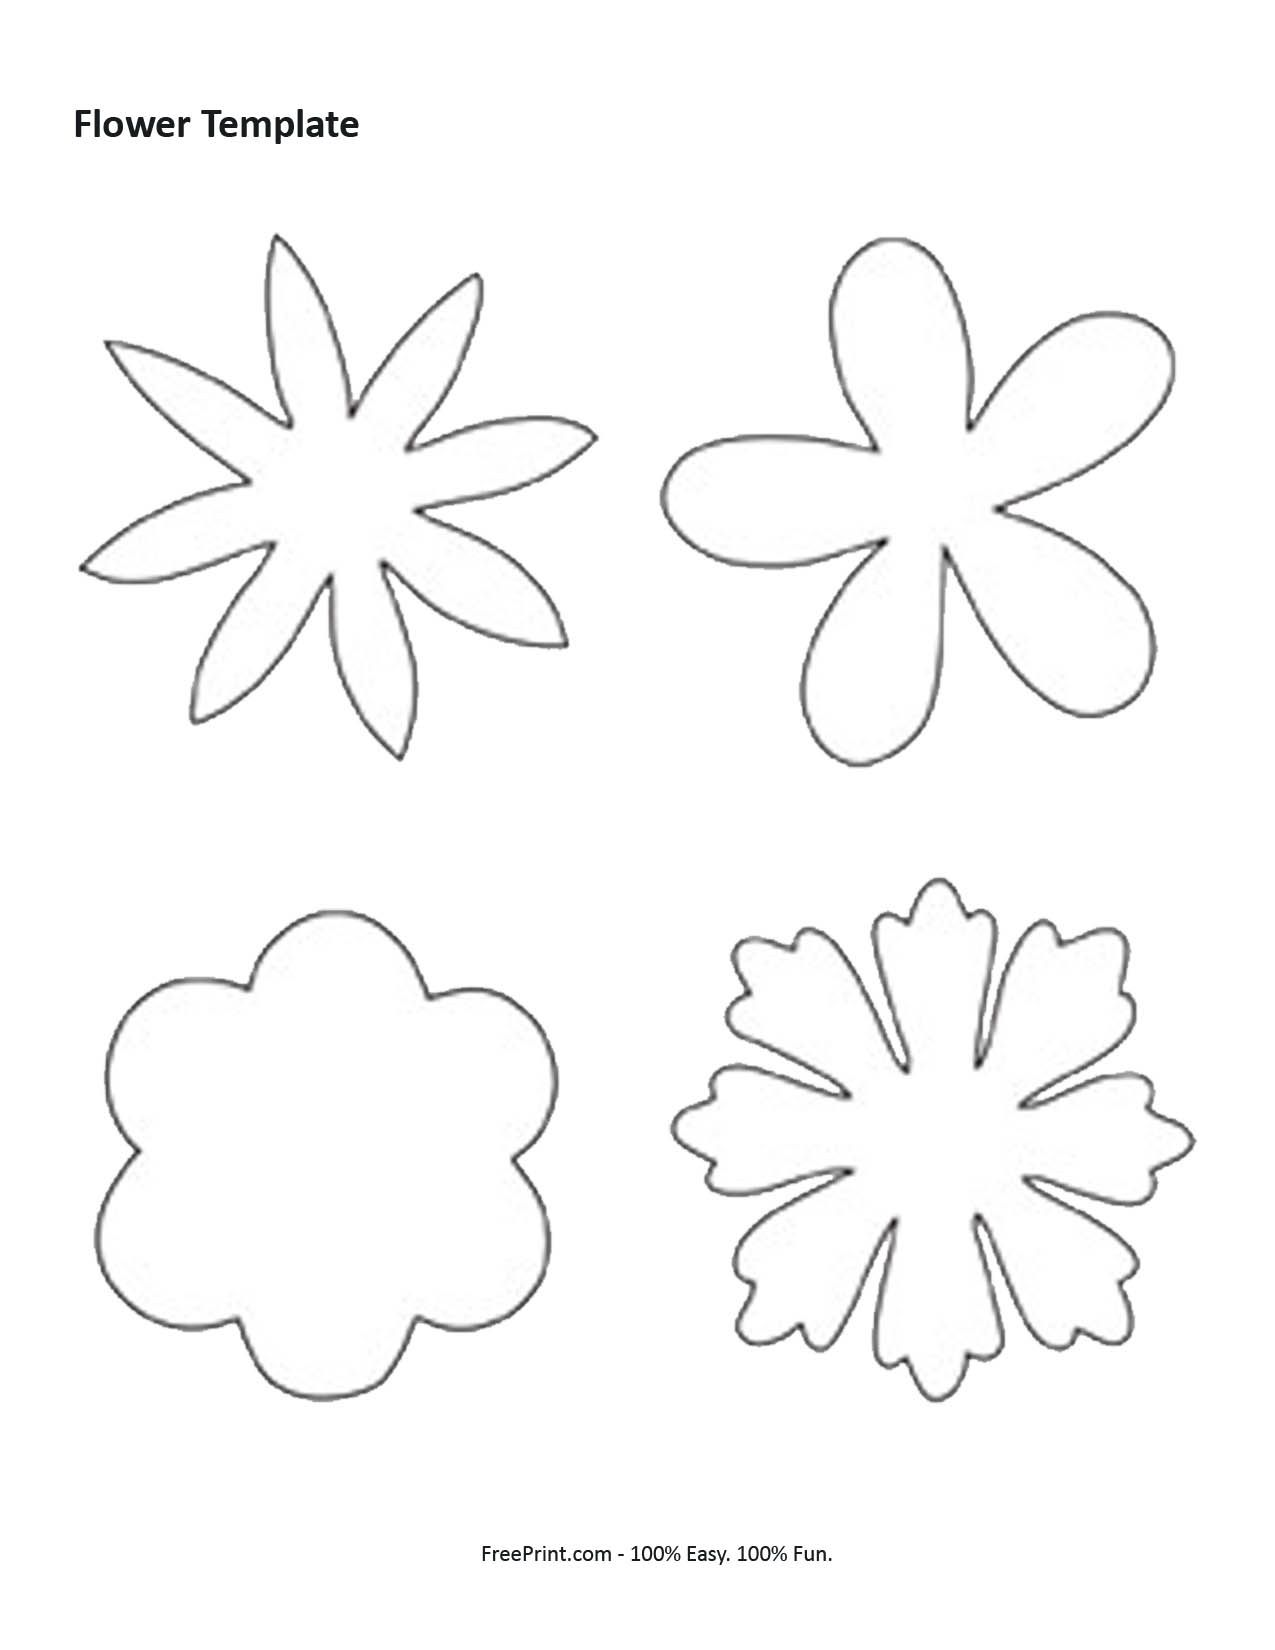 Printable flower templates coloring home 7 best images of shape flower printable templates free printable pronofoot35fo Image collections